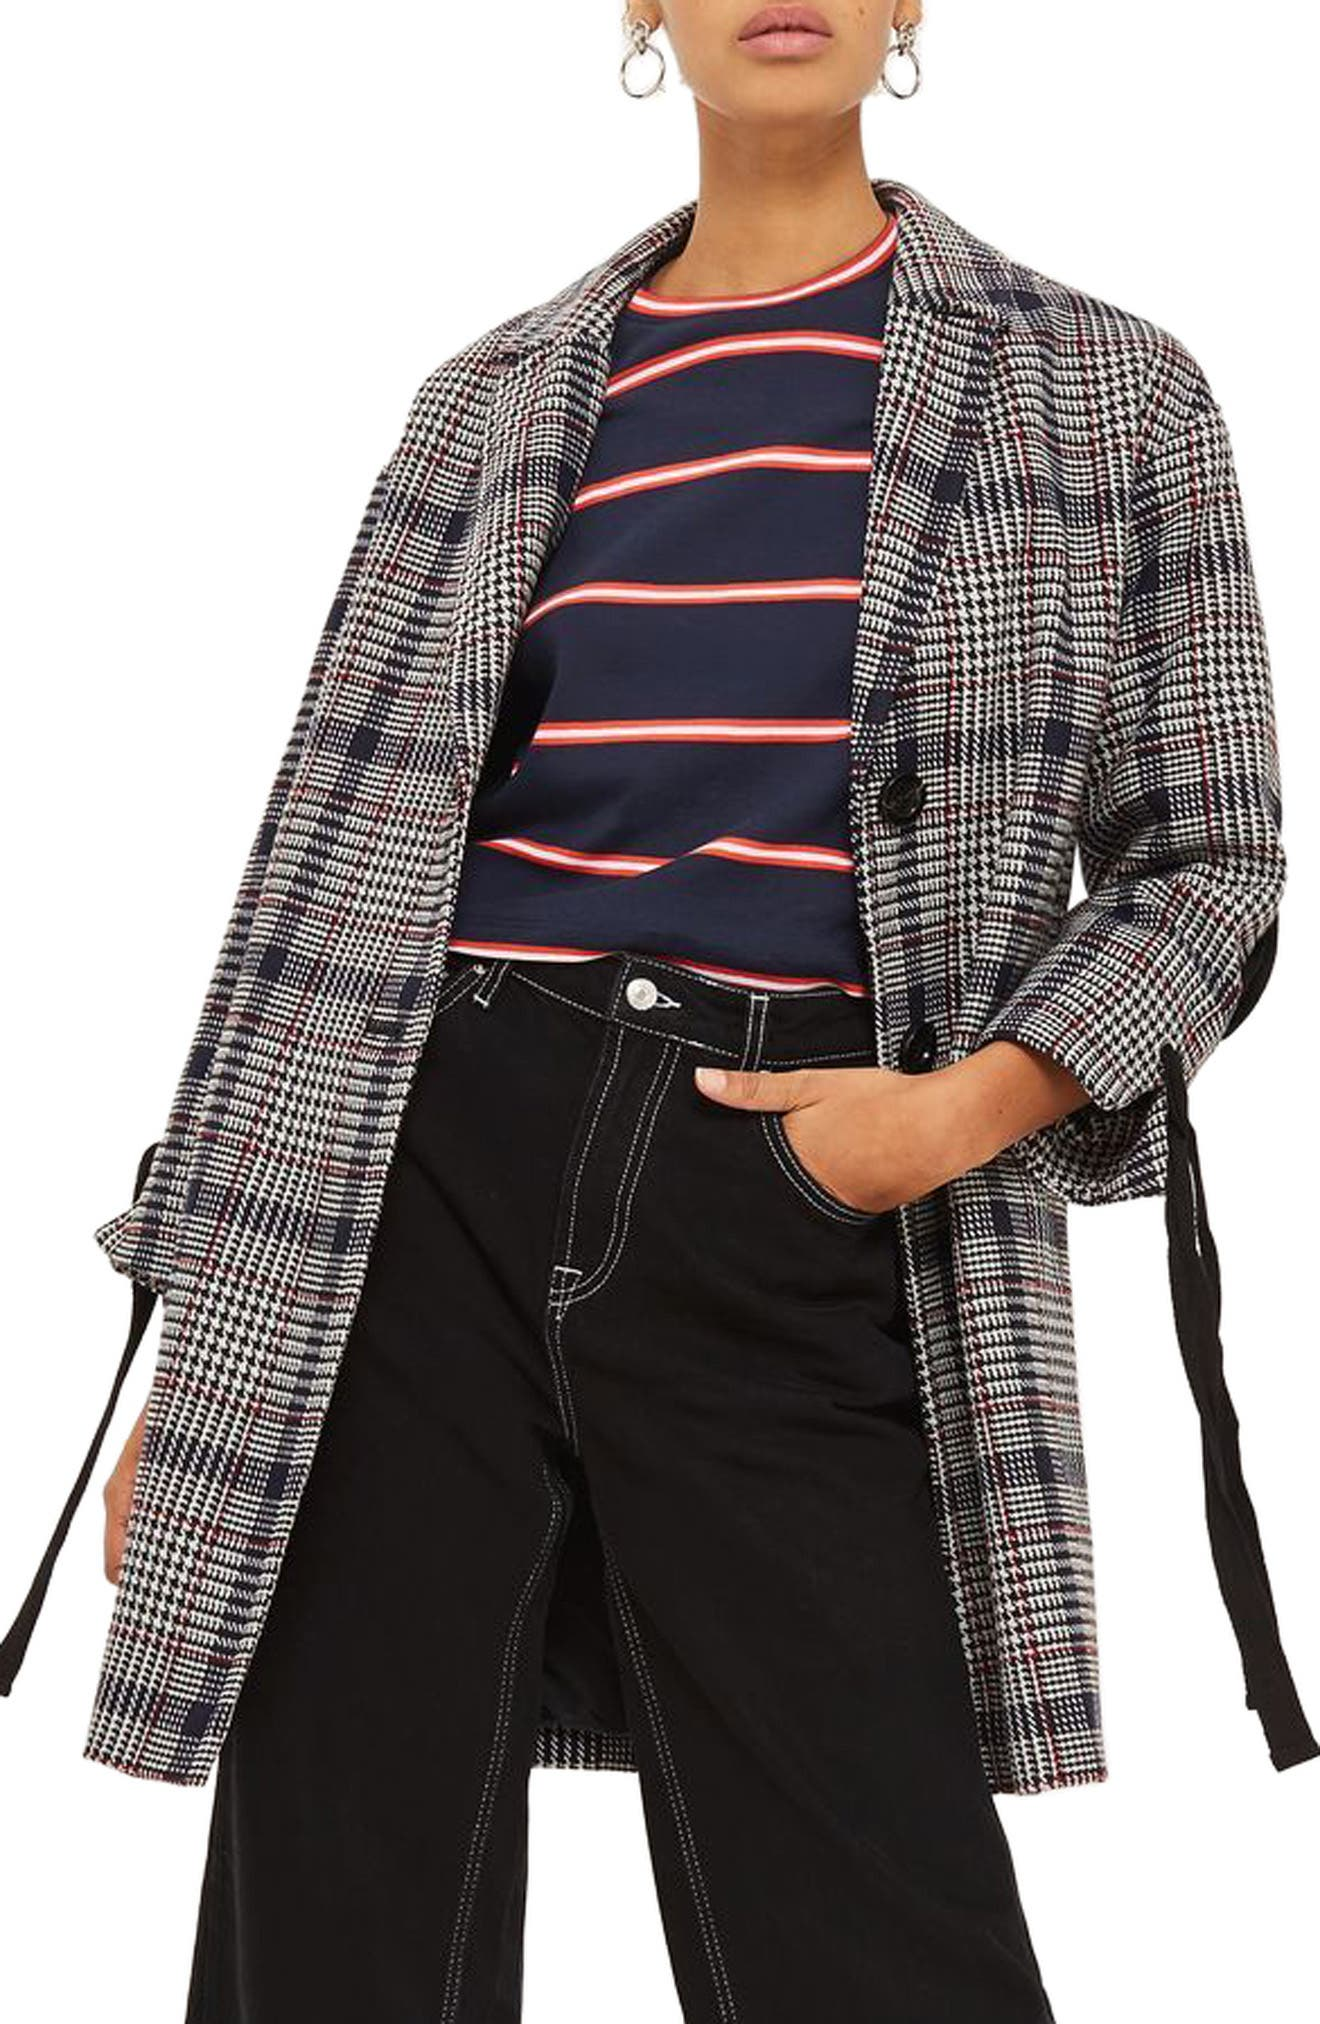 Topshop Lace-Up Sleeve Check Coat